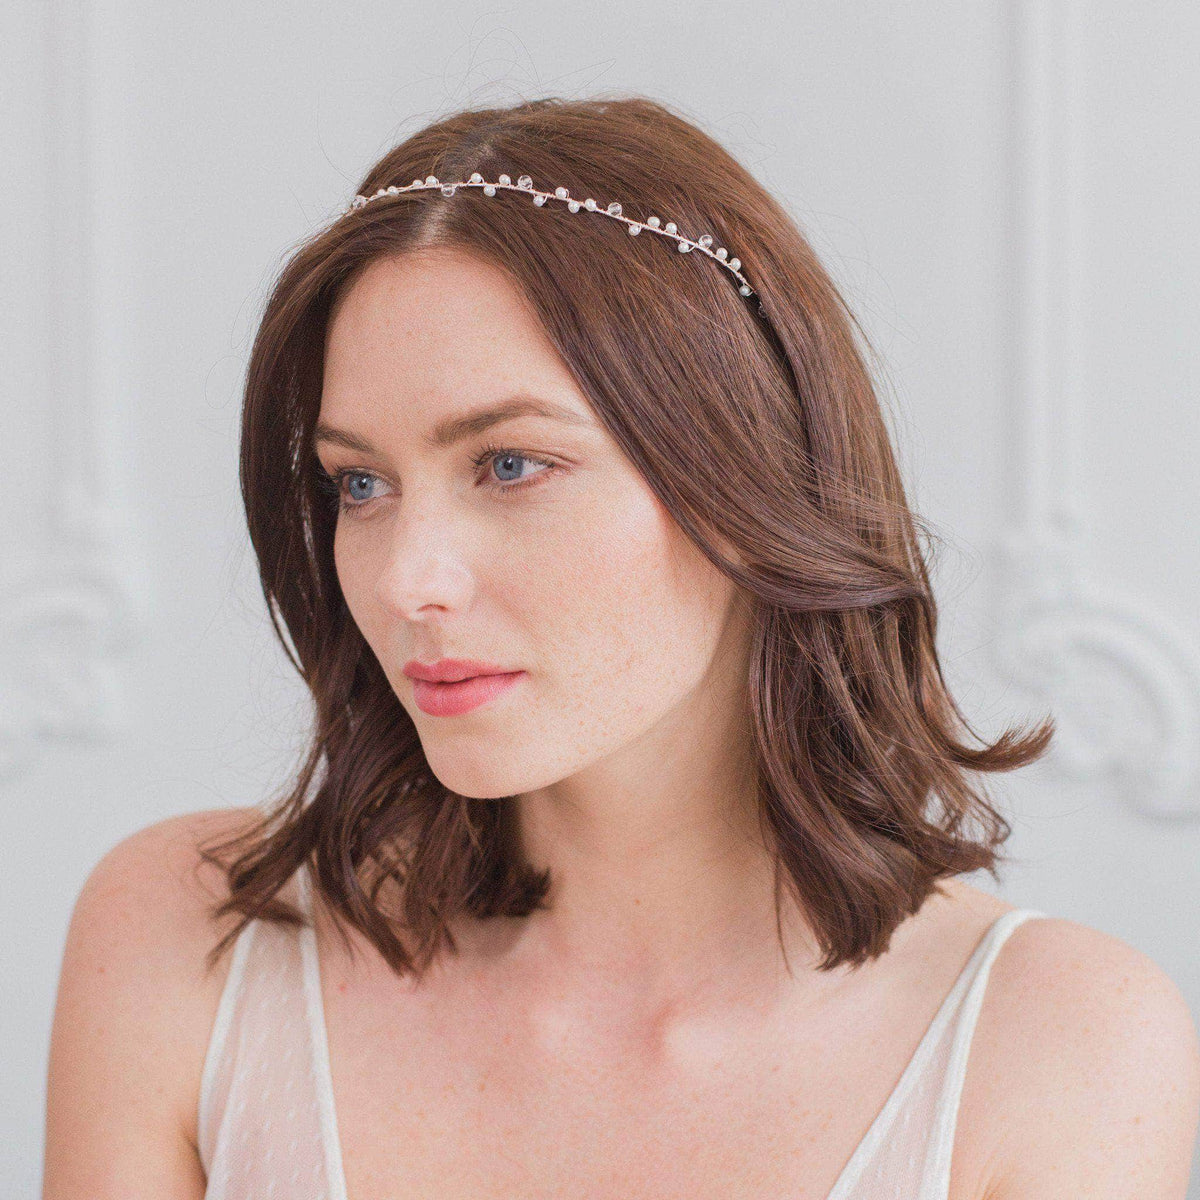 Wedding Hairvine Silver Pearl wedding hair vine in silver - 'Skye'